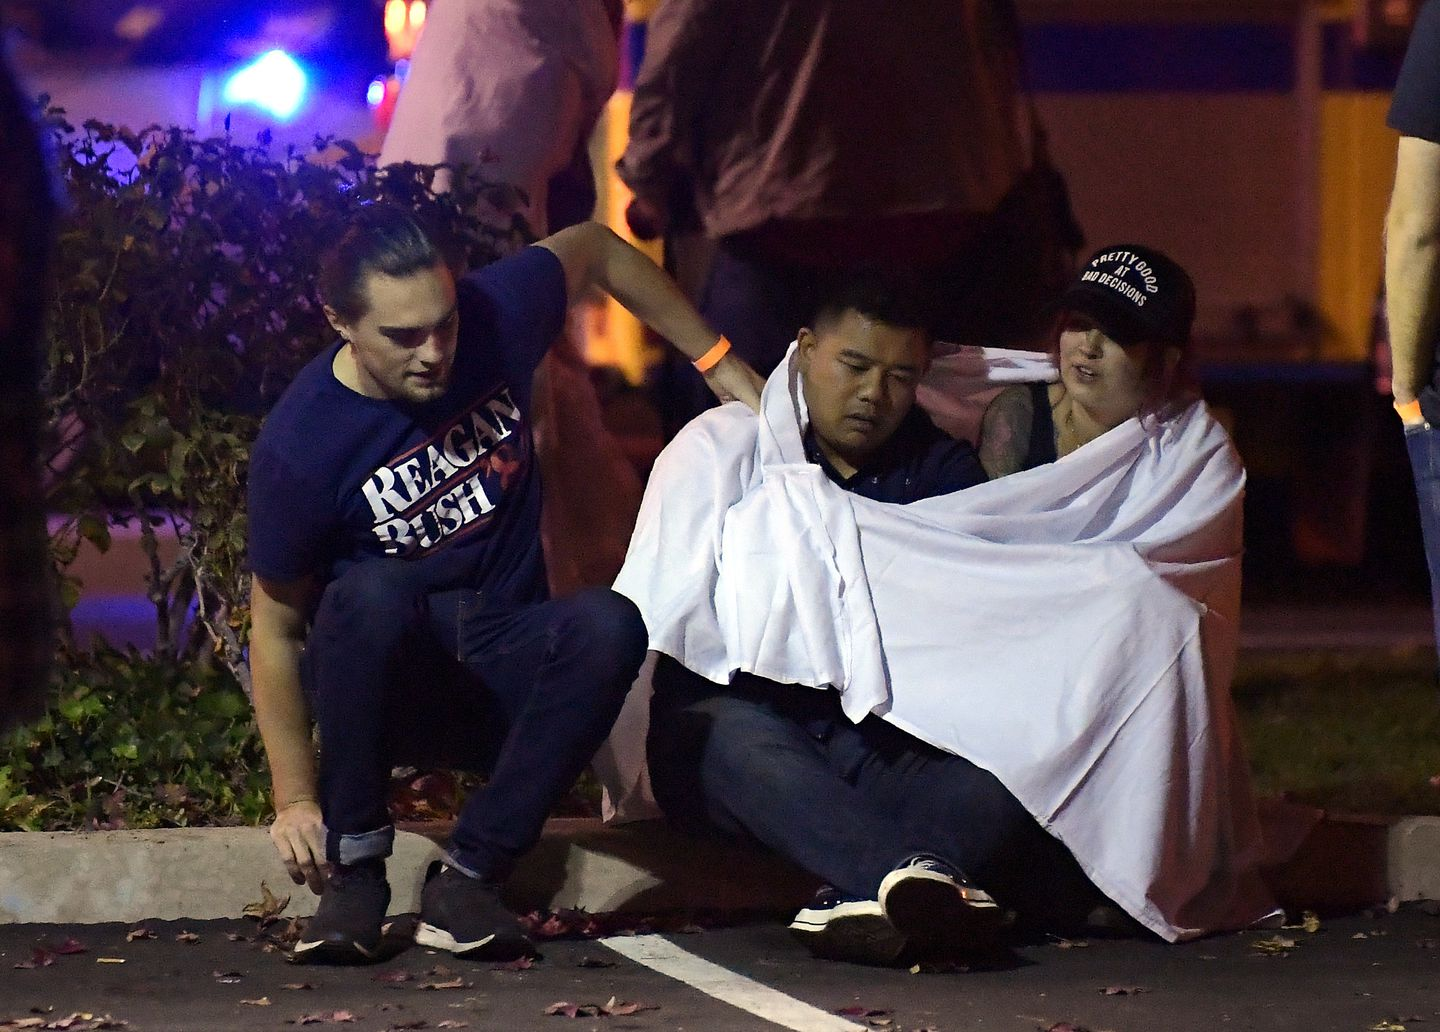 People comforted each other as they sat near the scene.